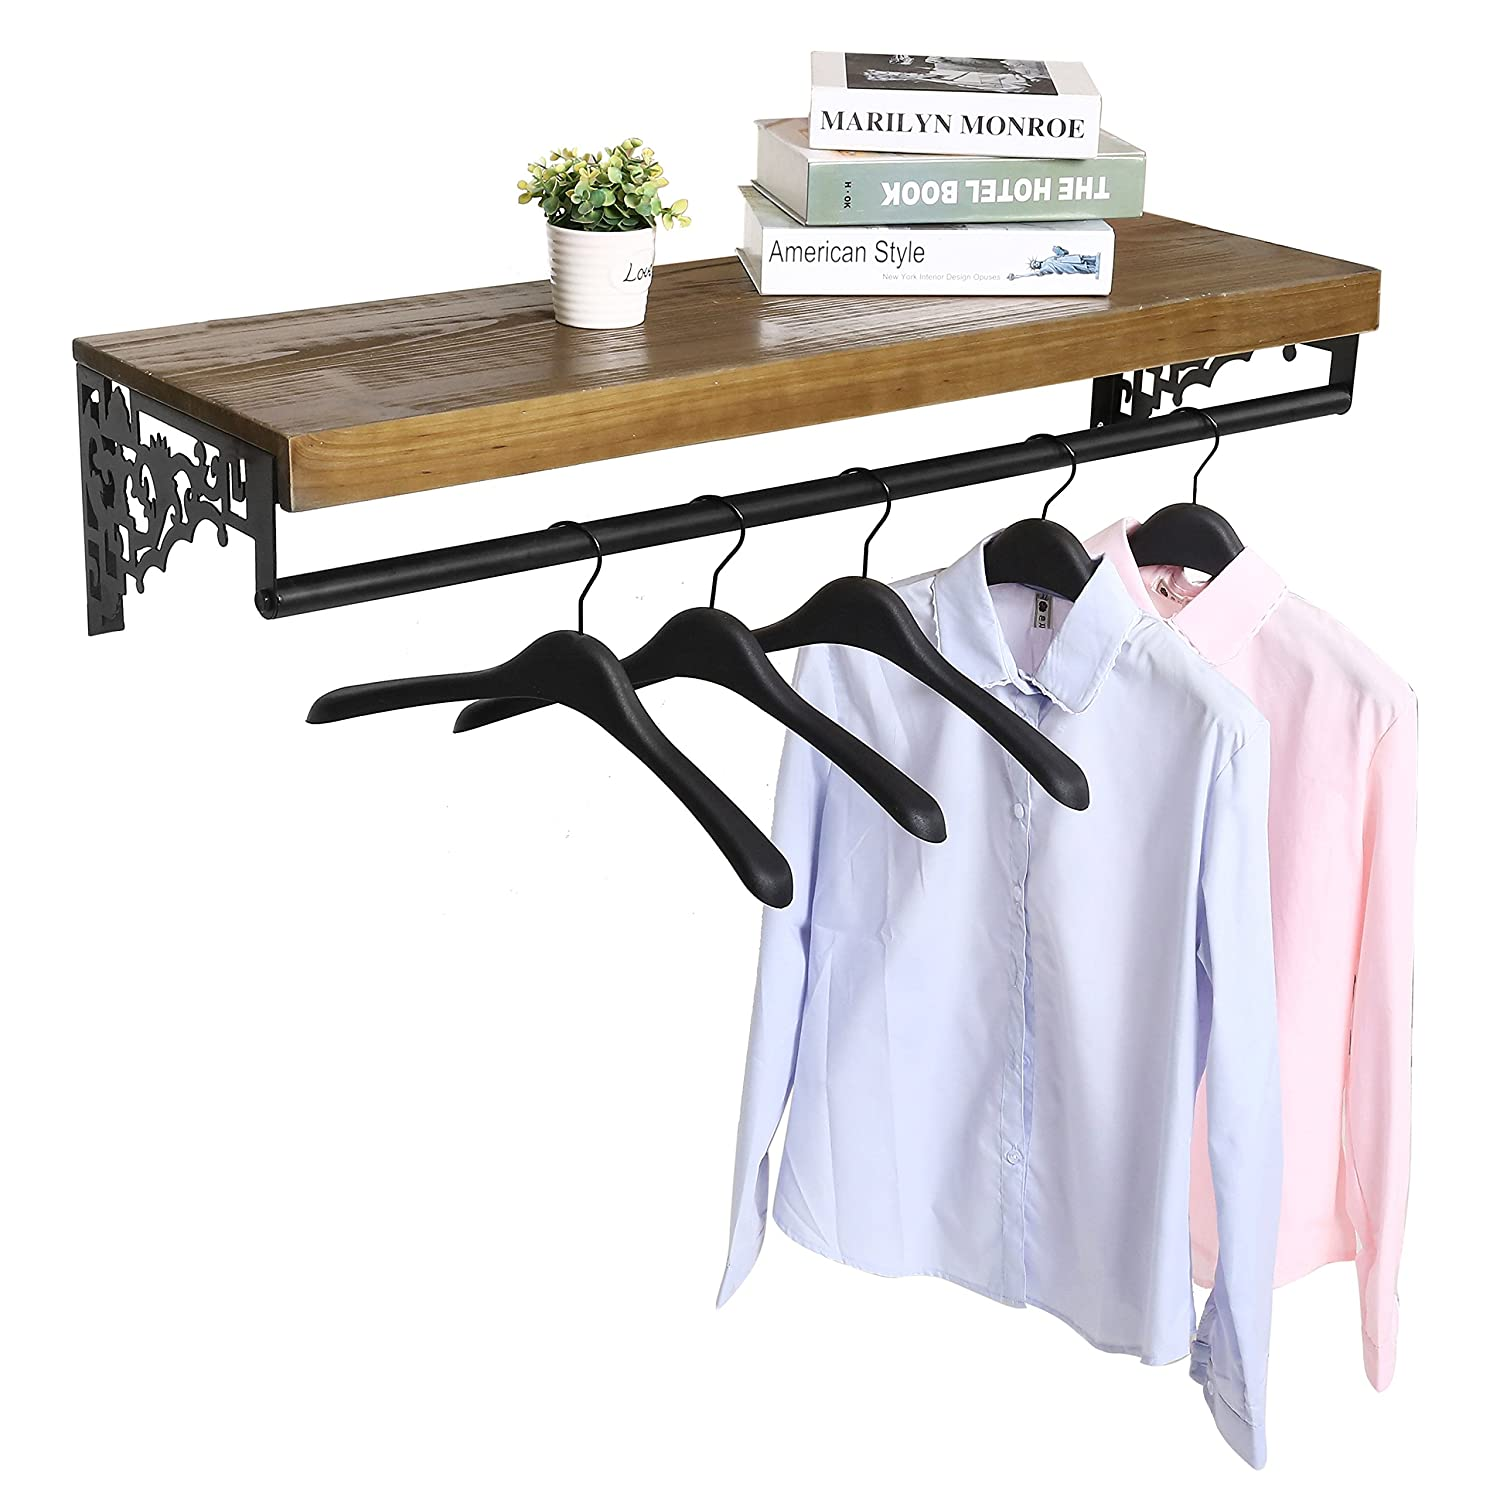 Wall Mounted Wood & Metal Floating Shelf w/Garment Hanger Rod, Decorative Retail Clothing Rack, Brown